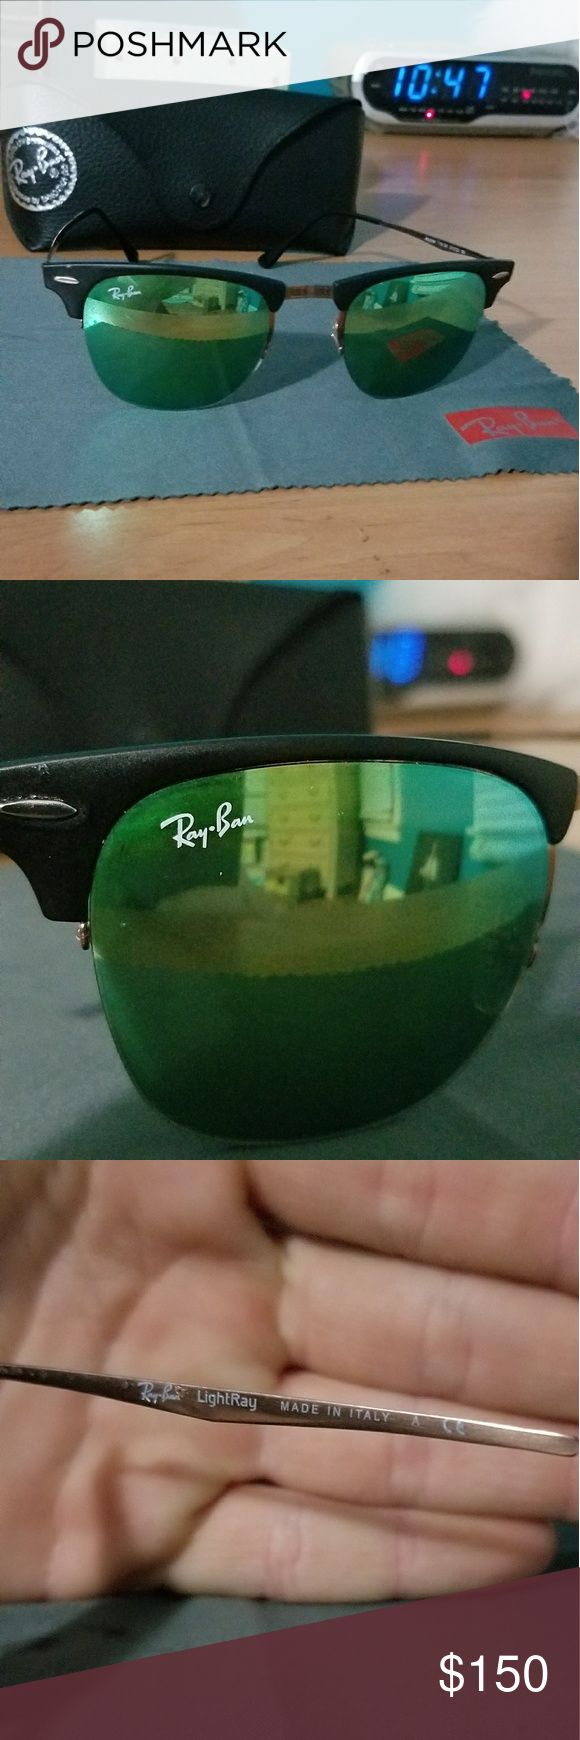 Ray Ban Light Ray Ray Ban Light Ray sunglasses. Impulse buy when I was vacationing in Cancun only worn once since upon my return to the u.s I bought a pair of Wayfarers because I like the weight more Ray-Ban Accessories Glasses